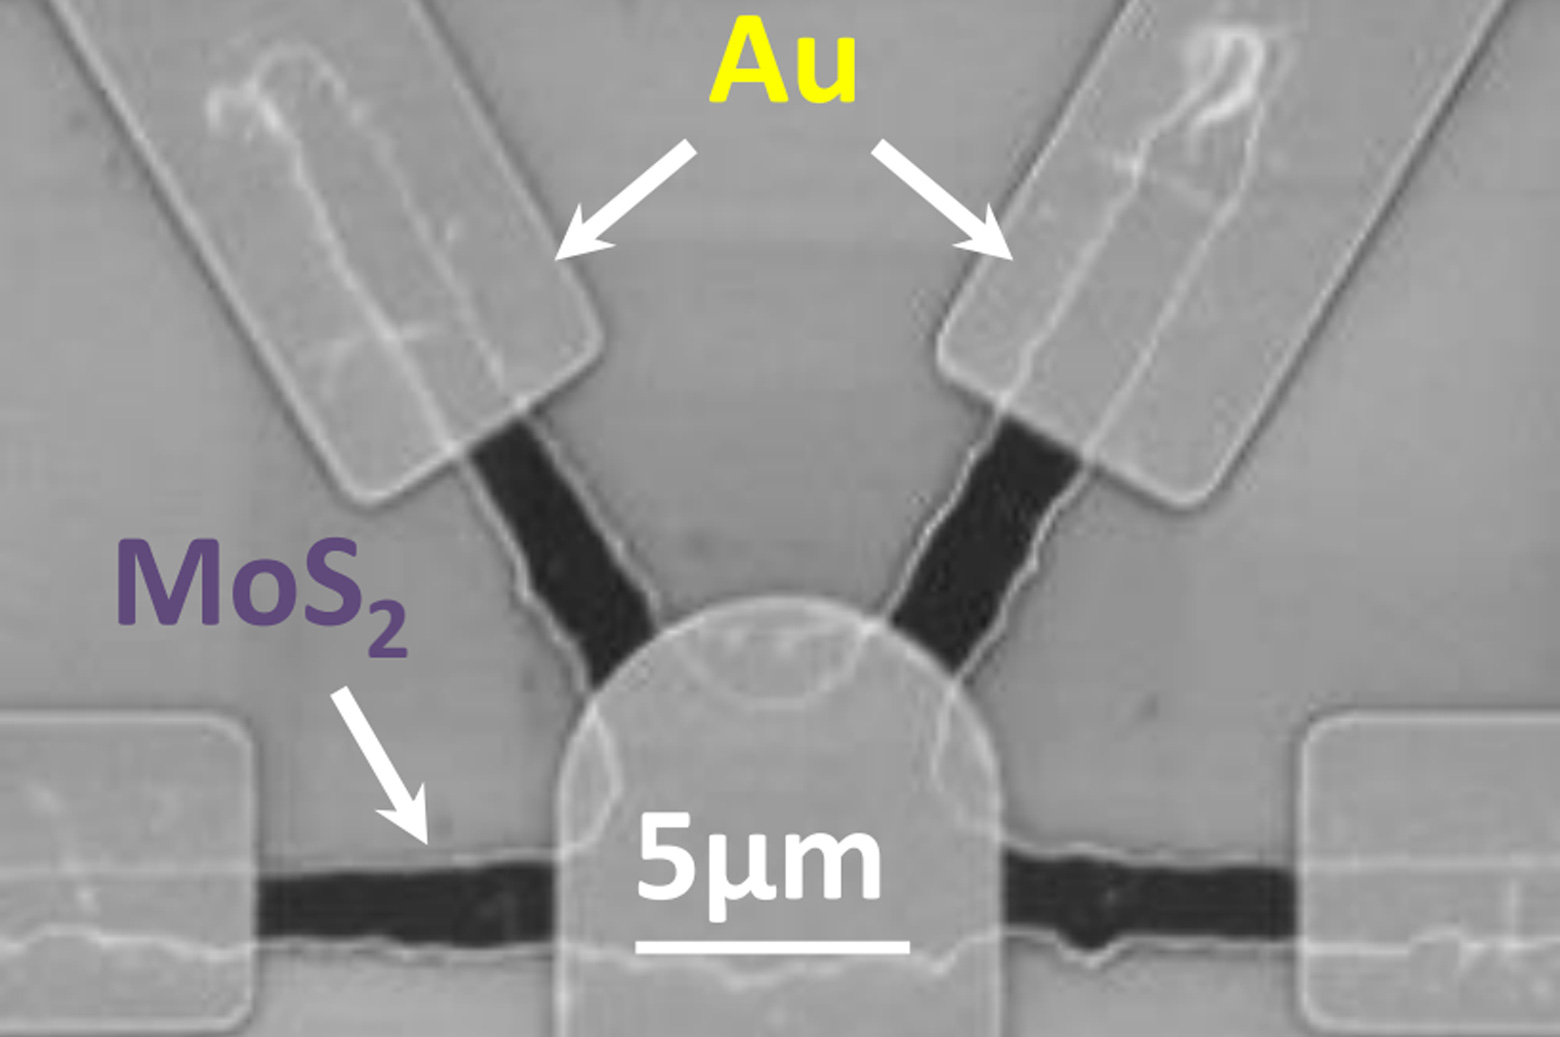 An electron microscope image showing the rectangular gold (Au) electrodes representing signalling neurons and the rounded electrode representing the receiving neuron.